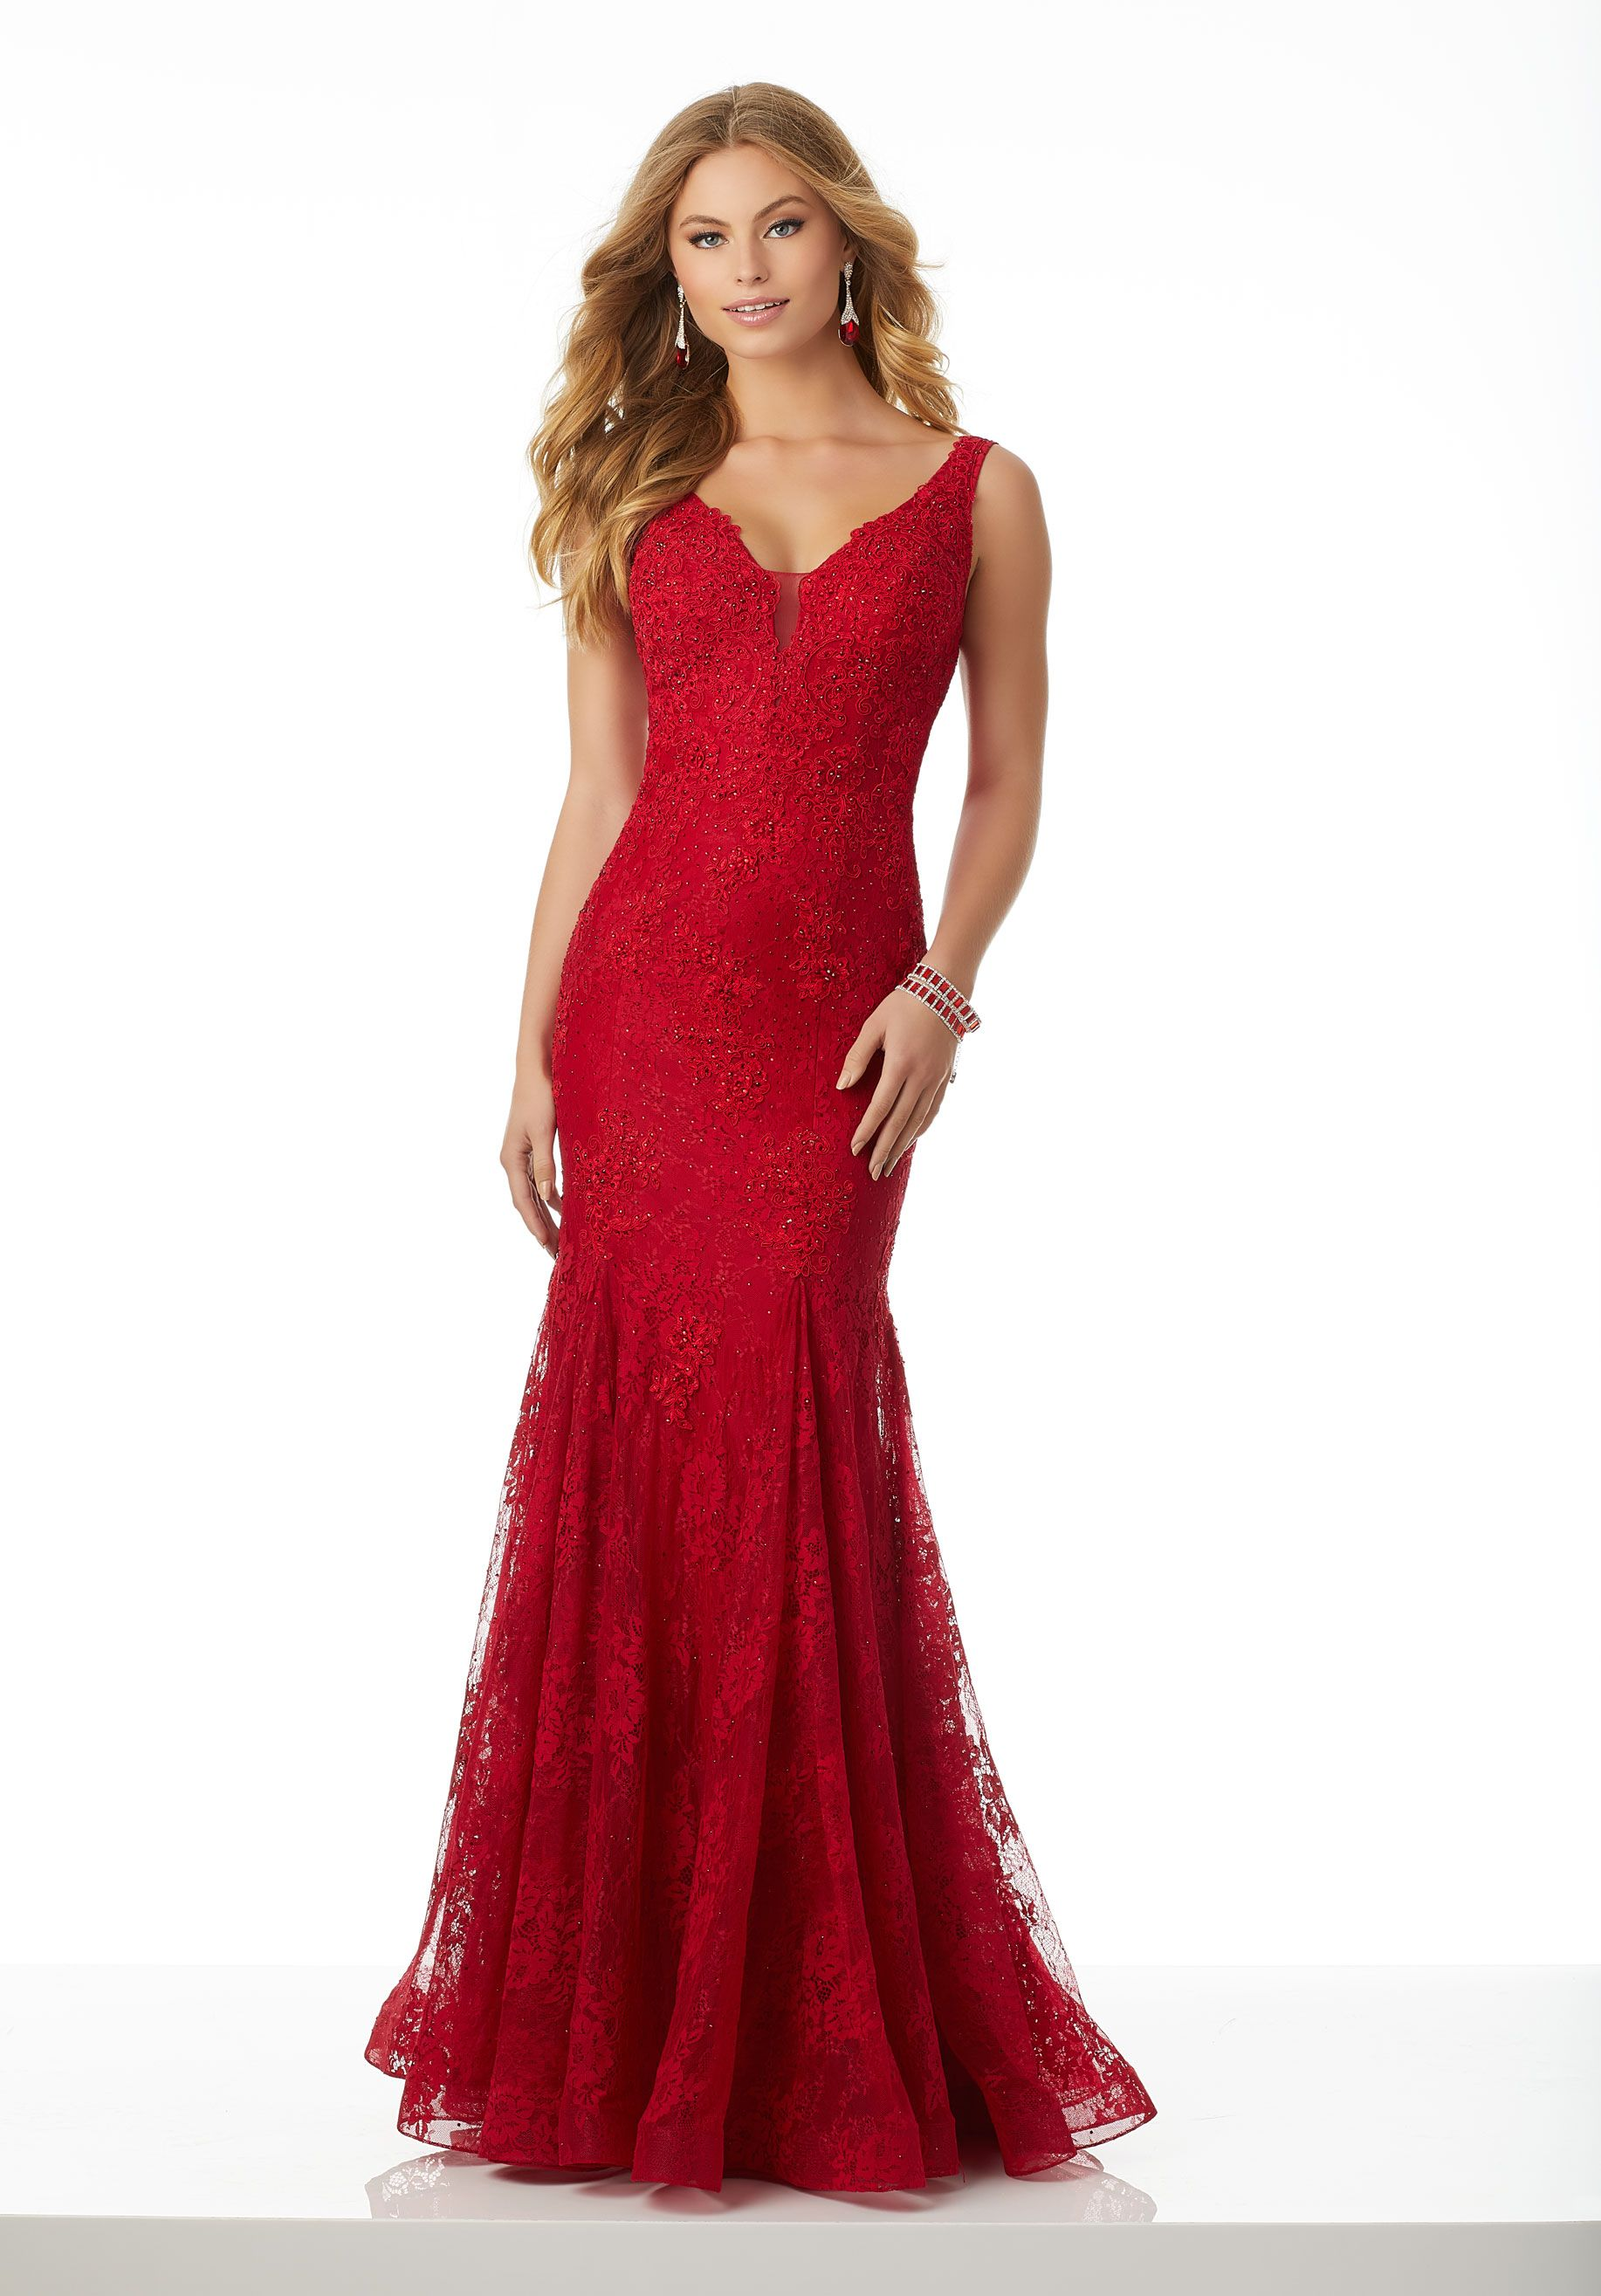 Gorgeous Strech Lace Prom Gown Accented with Beaded Appliqués. A Deep V- Neckline and Open U-Shaped Back Complete the Sexy Look 033068e75